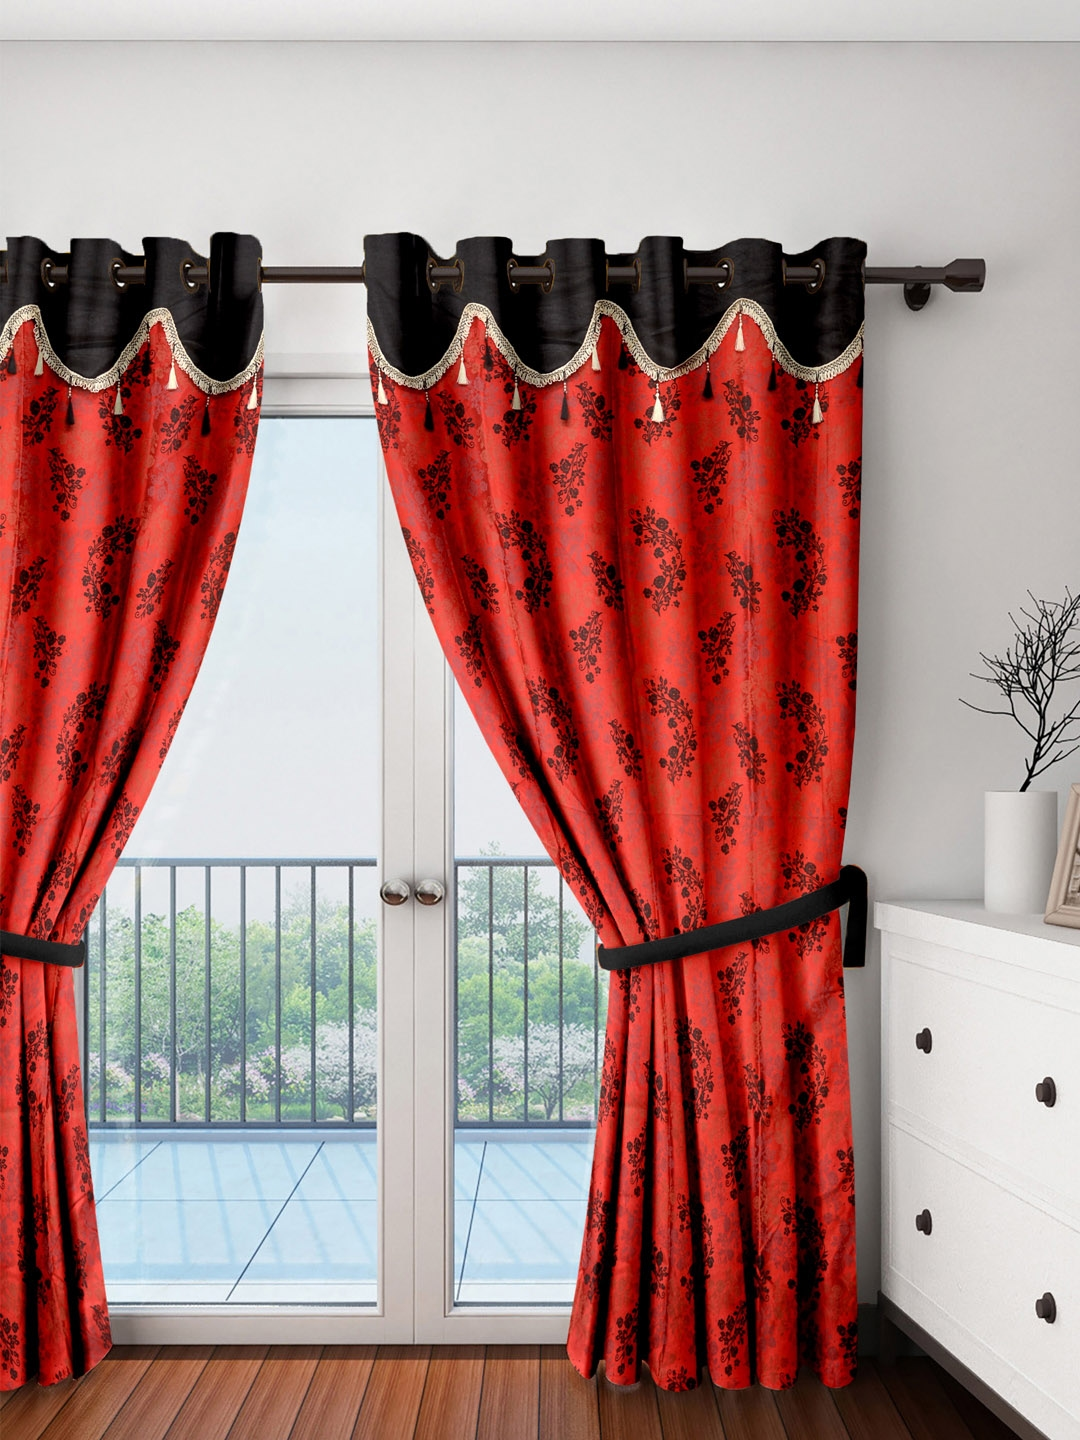 Buy Cortina Set Of 2 Red & Black Printed Door Curtain - Curtains And Sheers  for Unisex 1912926   Myntra